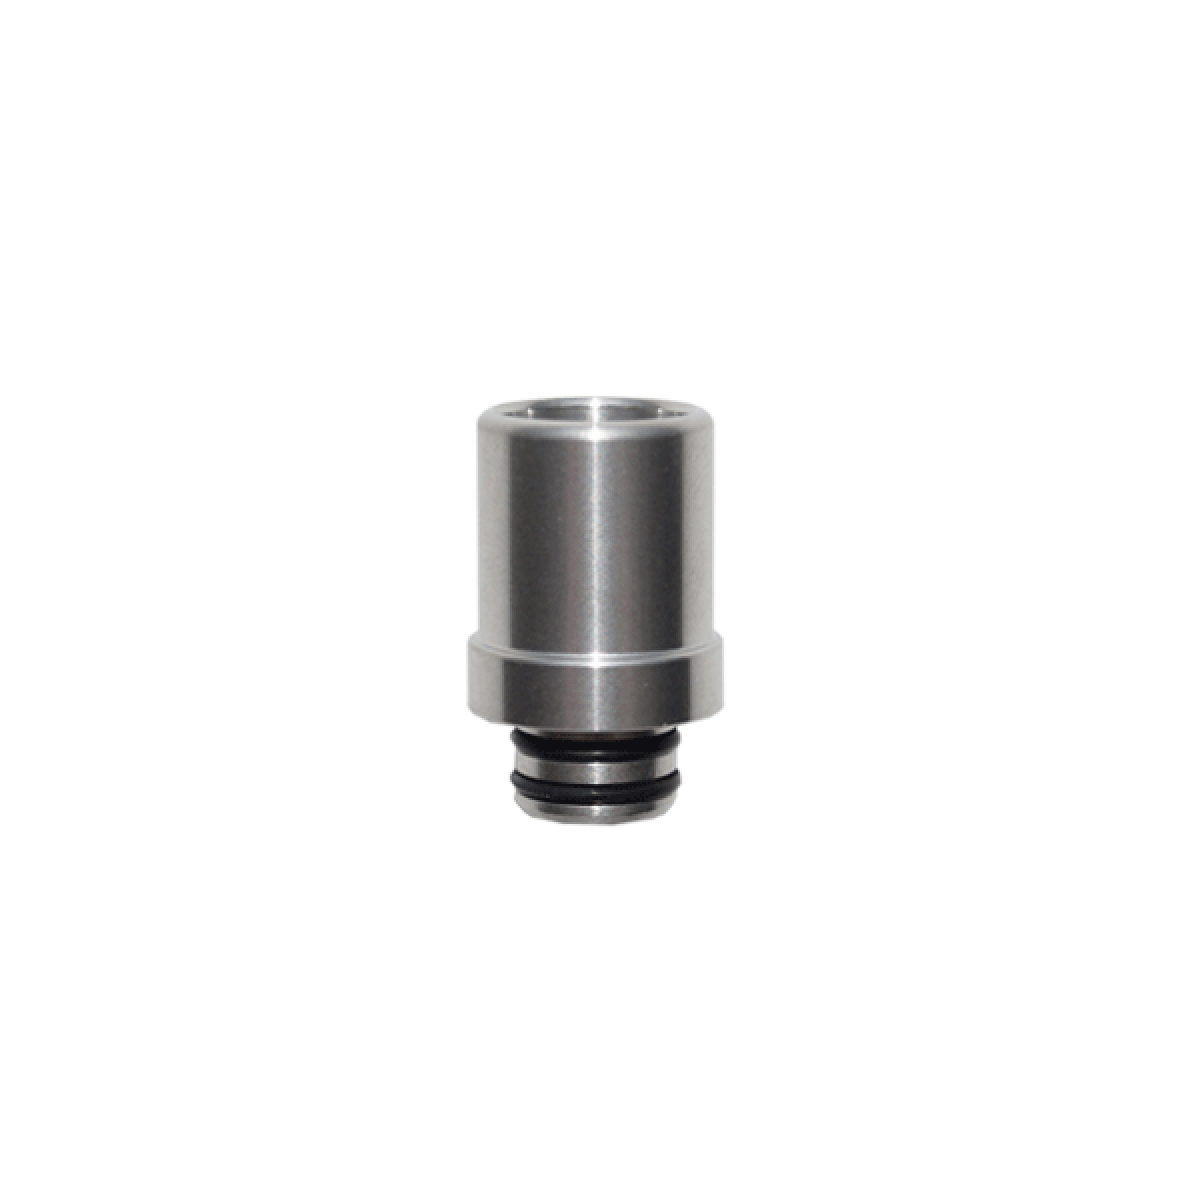 Eleaf iJust 2 Mouthpiece